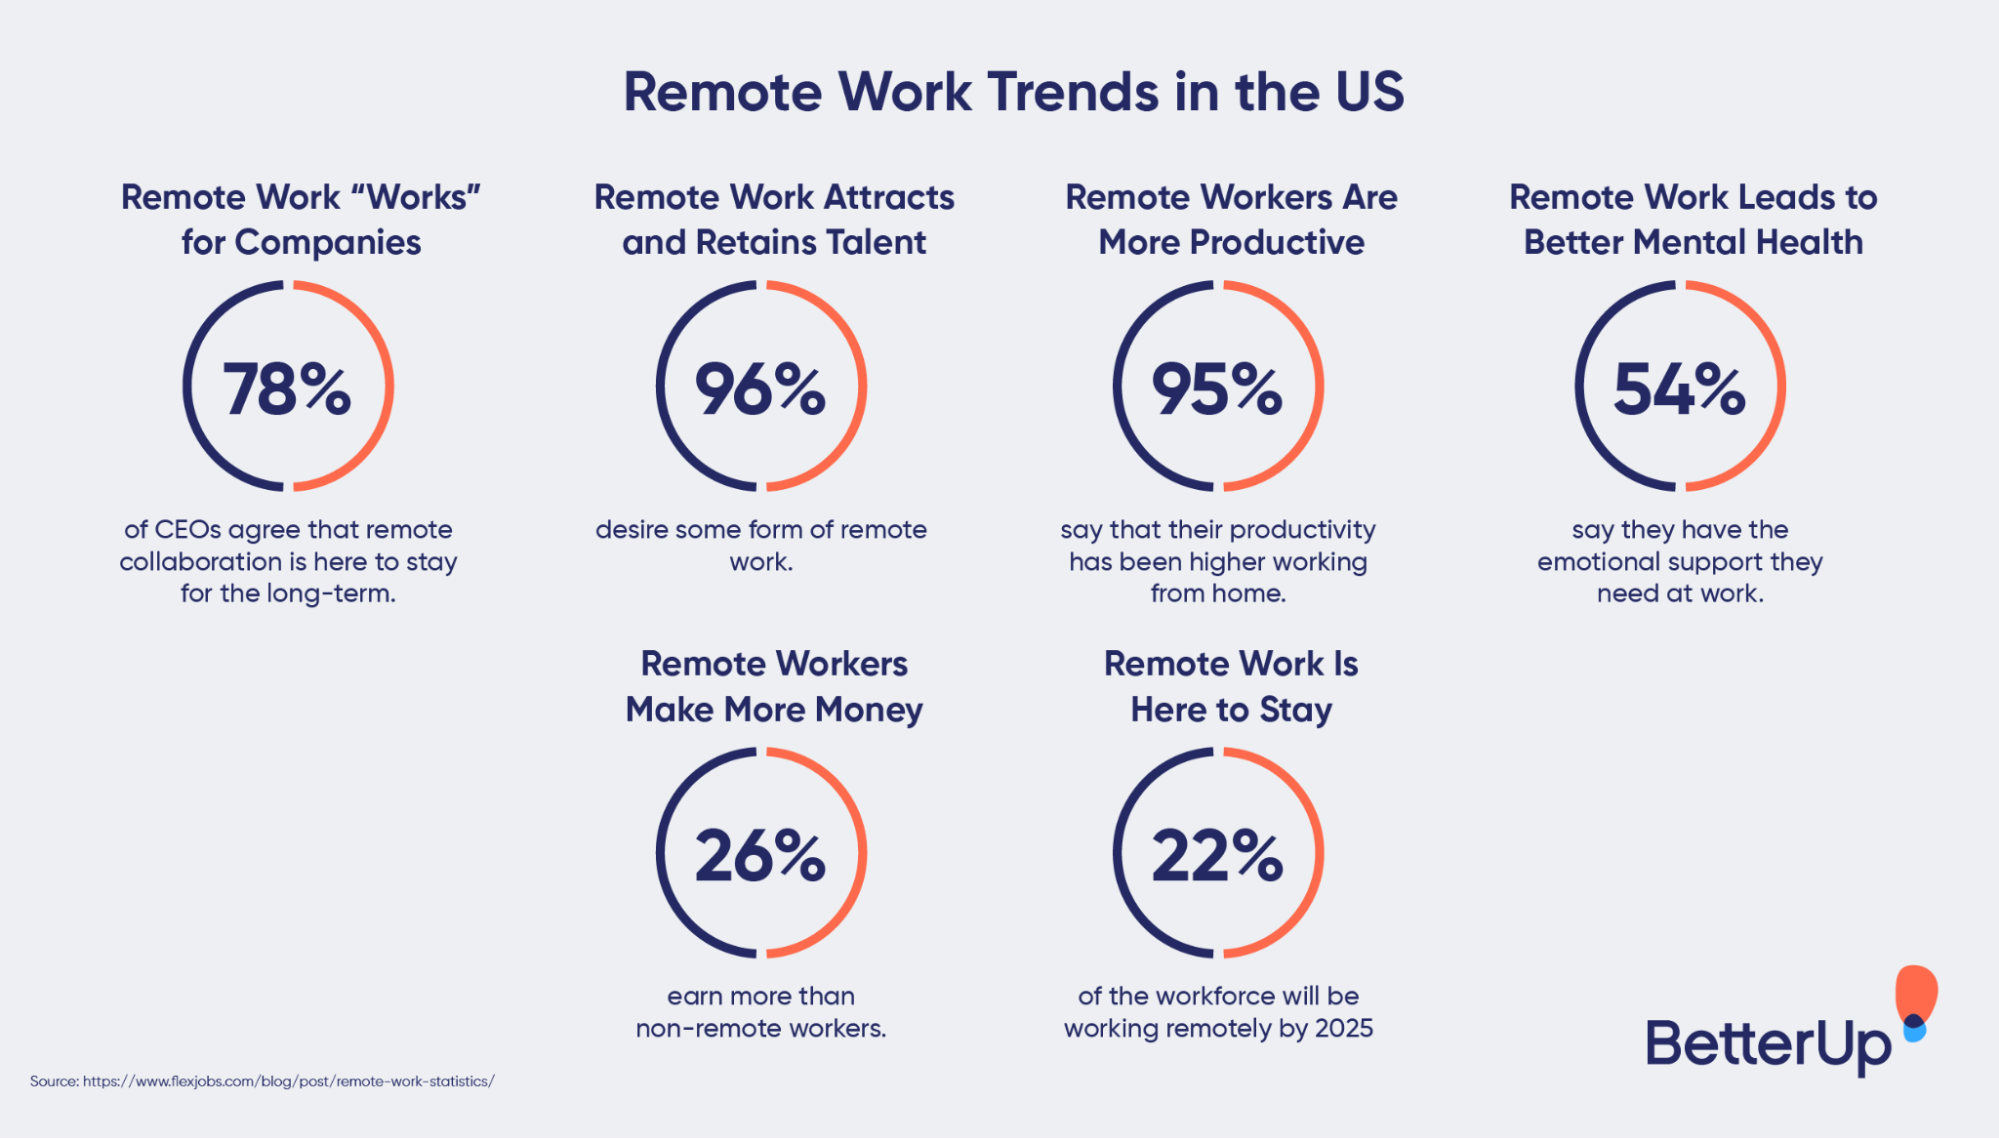 remote-work-trends-in-the-US-fun-activities-at-work